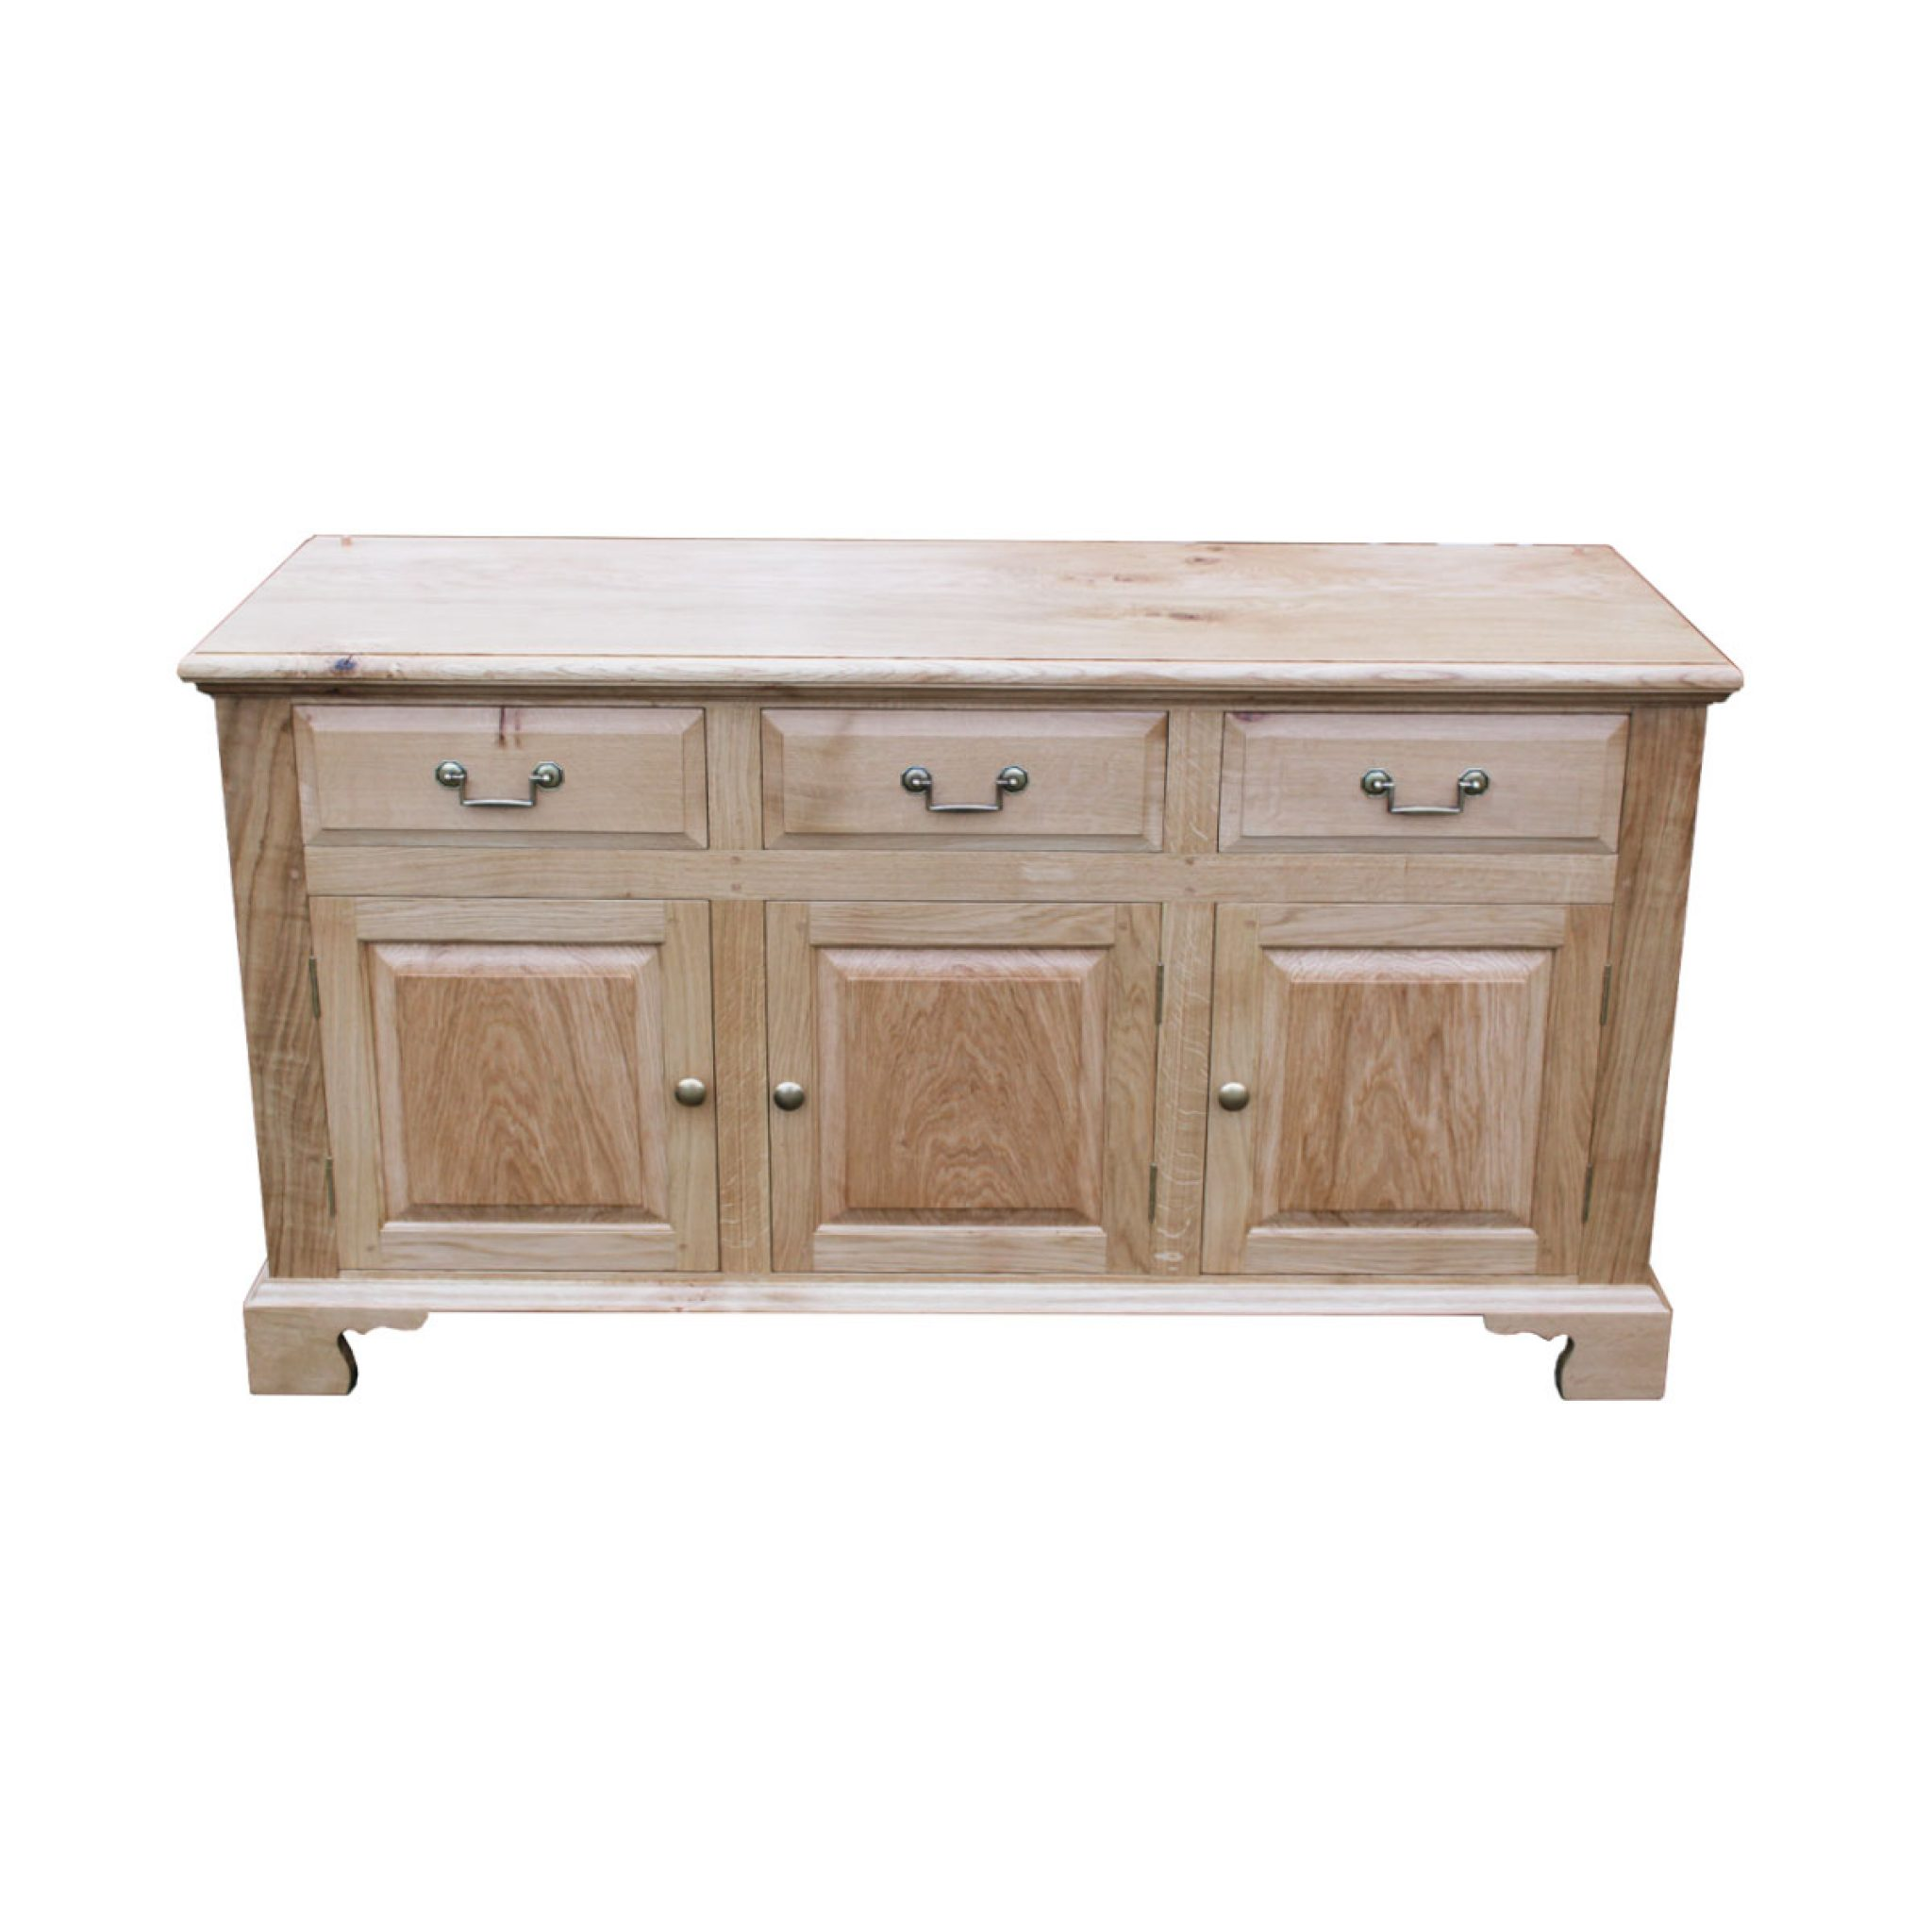 Handmade Oak Furniture Boroughbridge